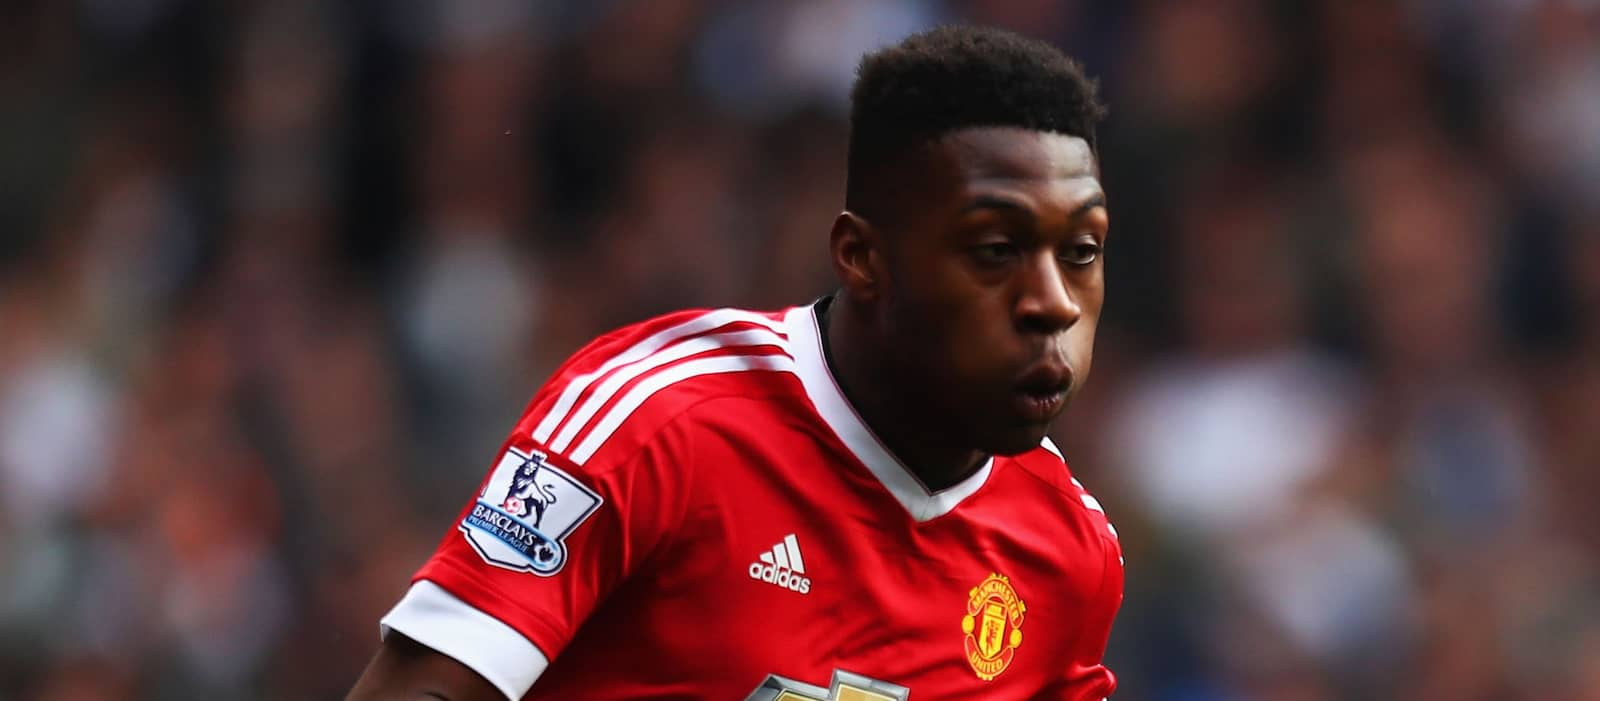 Timothy Fosu-Mensah sends message to Manchester United supporters